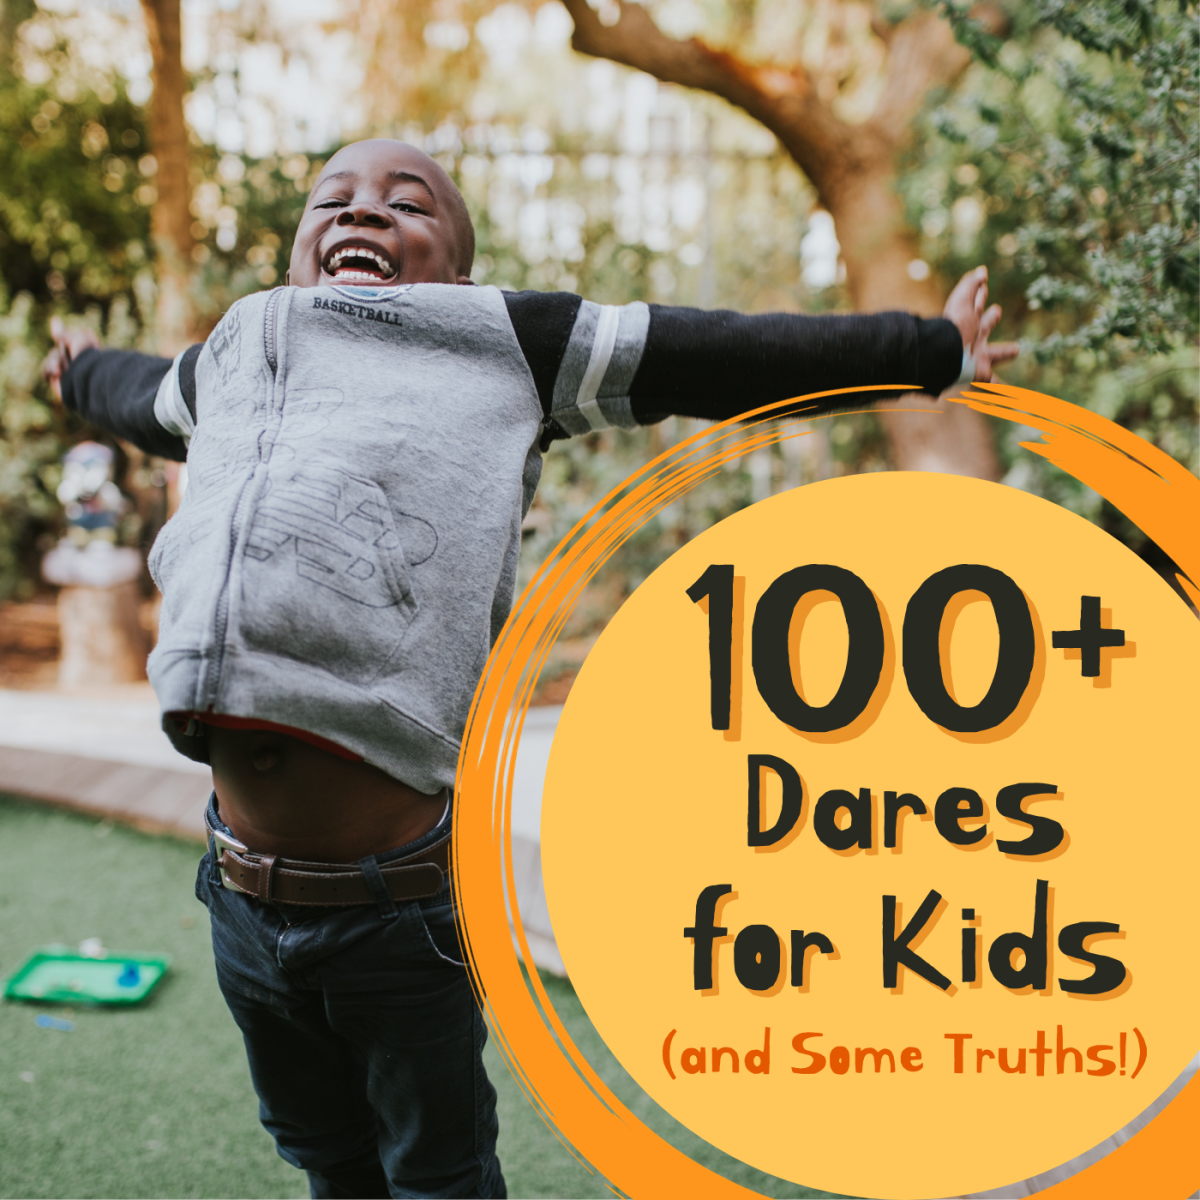 Make your next family game night more exciting (and hilarious) by playing Truth or Dare! It's easy to play a kid-friendly version of this game if you prepare the dares and truths ahead of time, and we've got 100+ ideas for you!